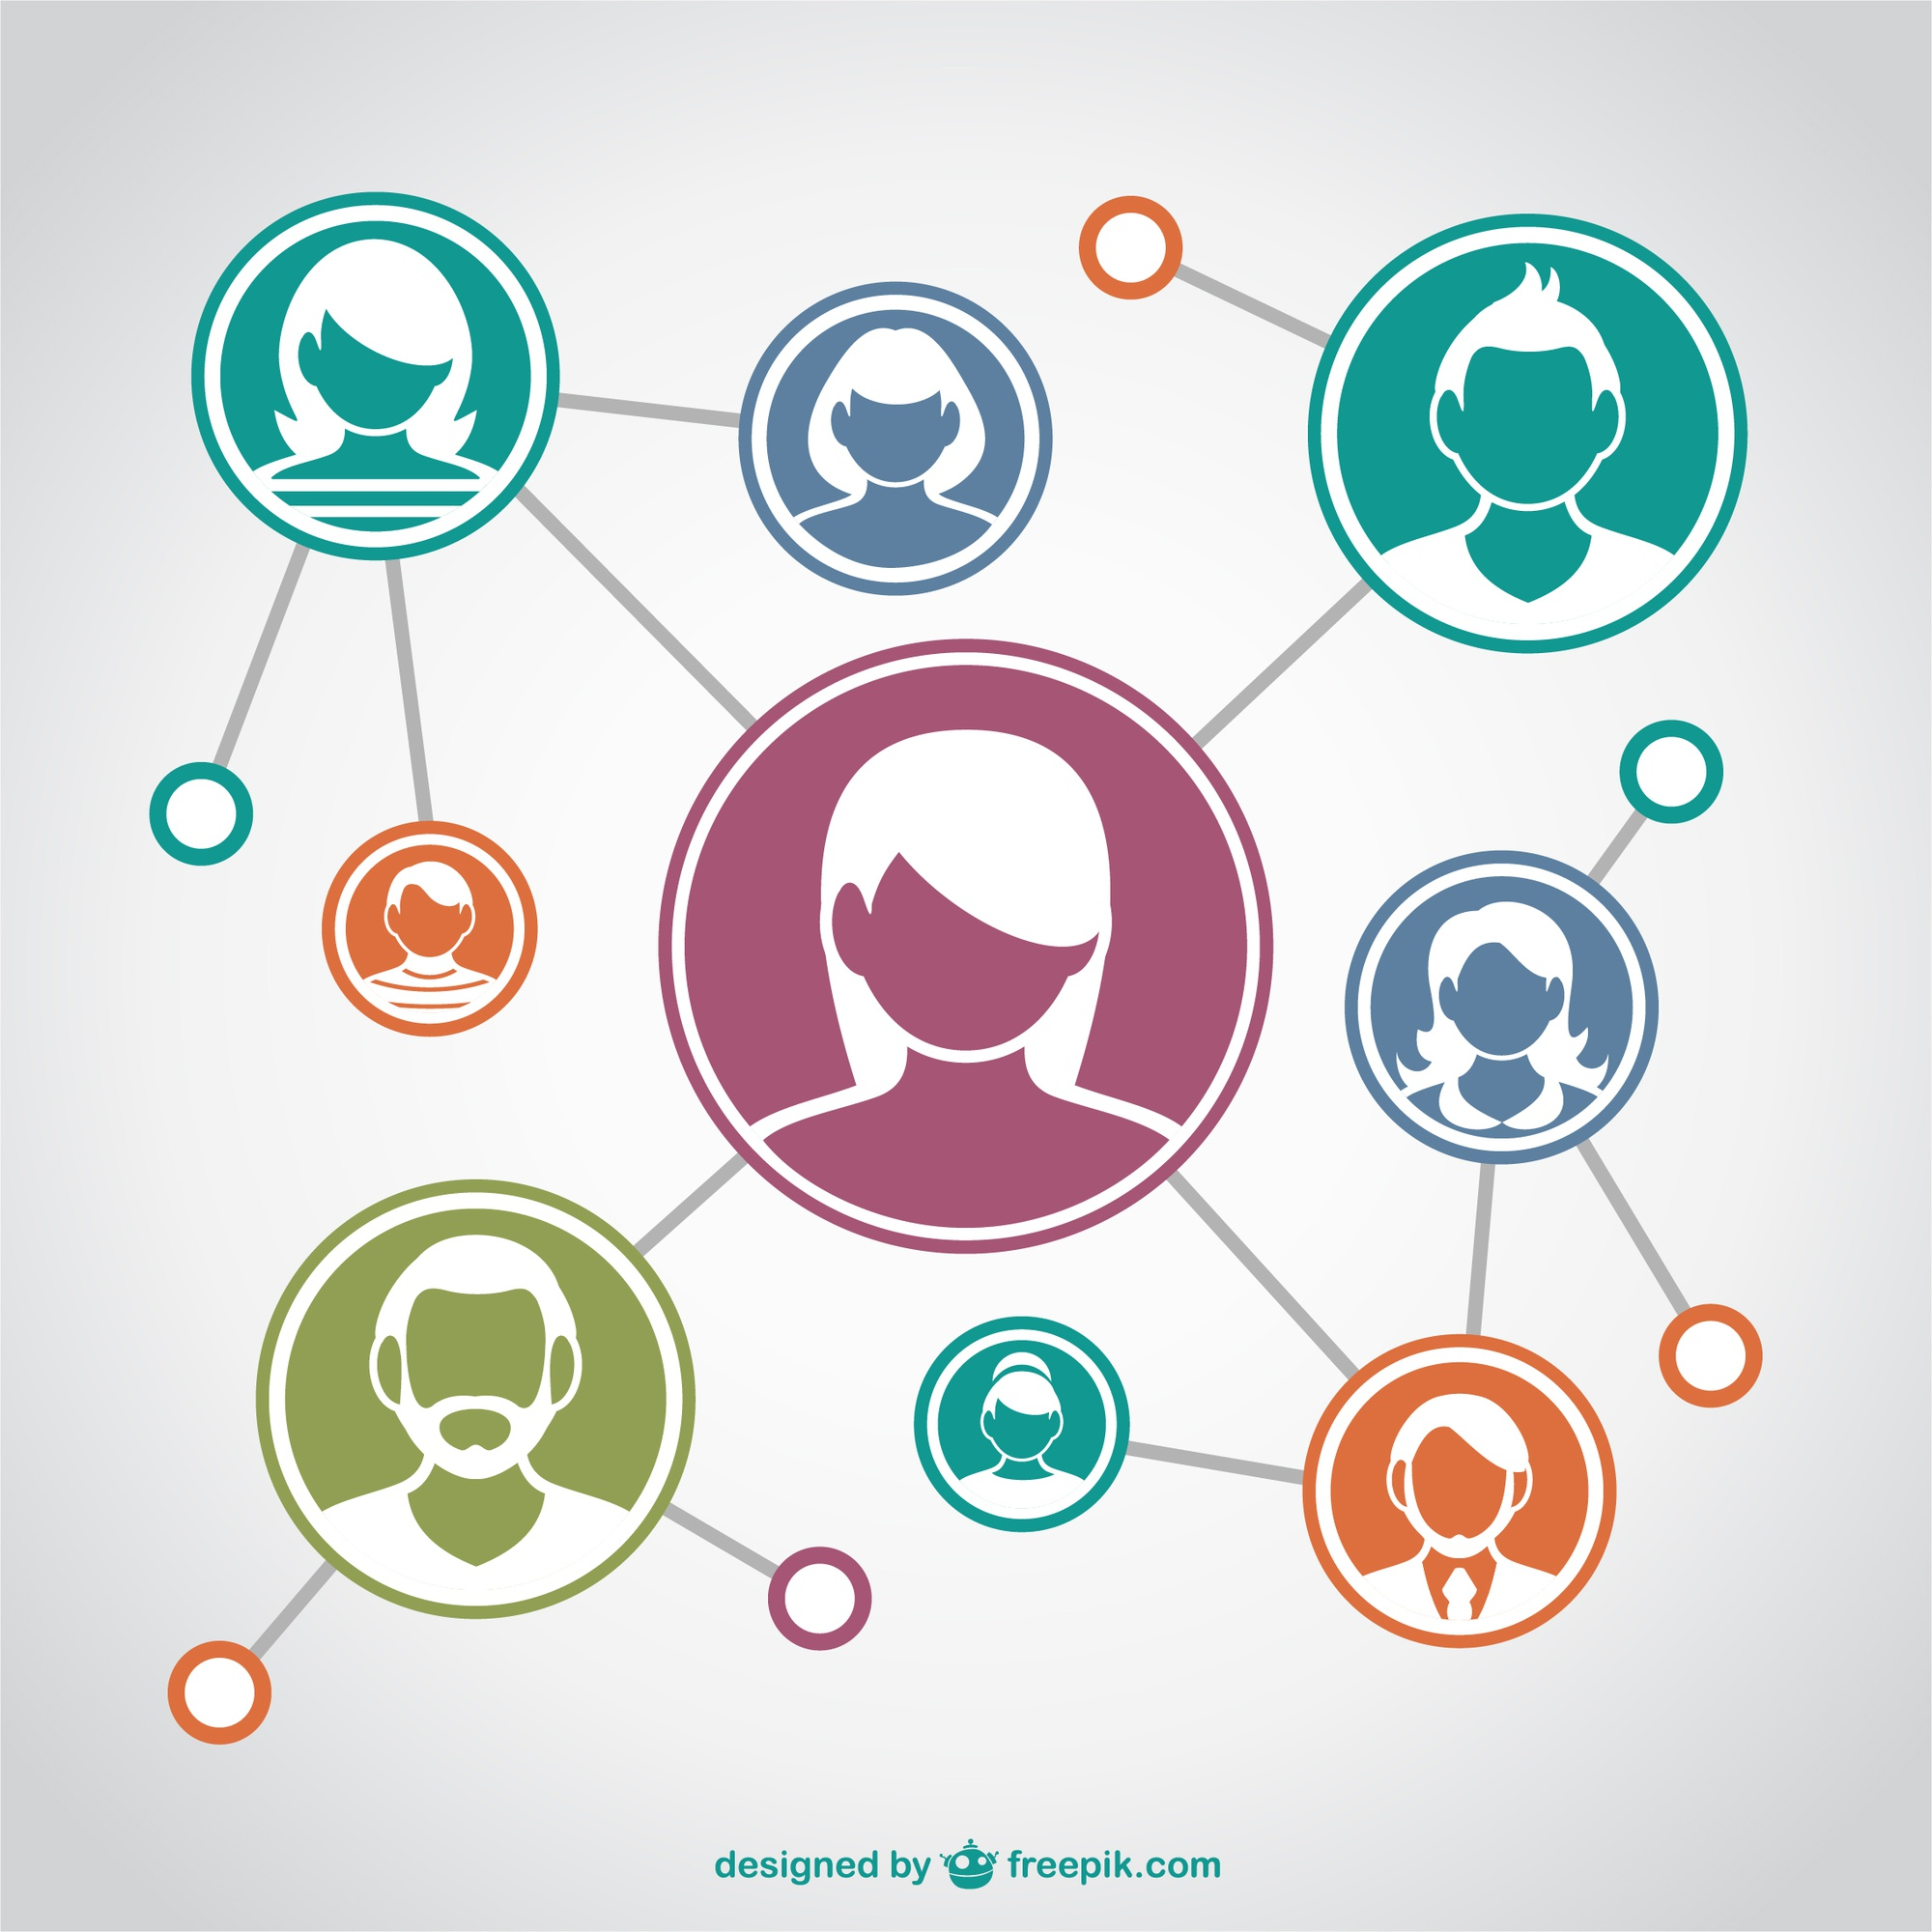 Communication network with assorted avatars